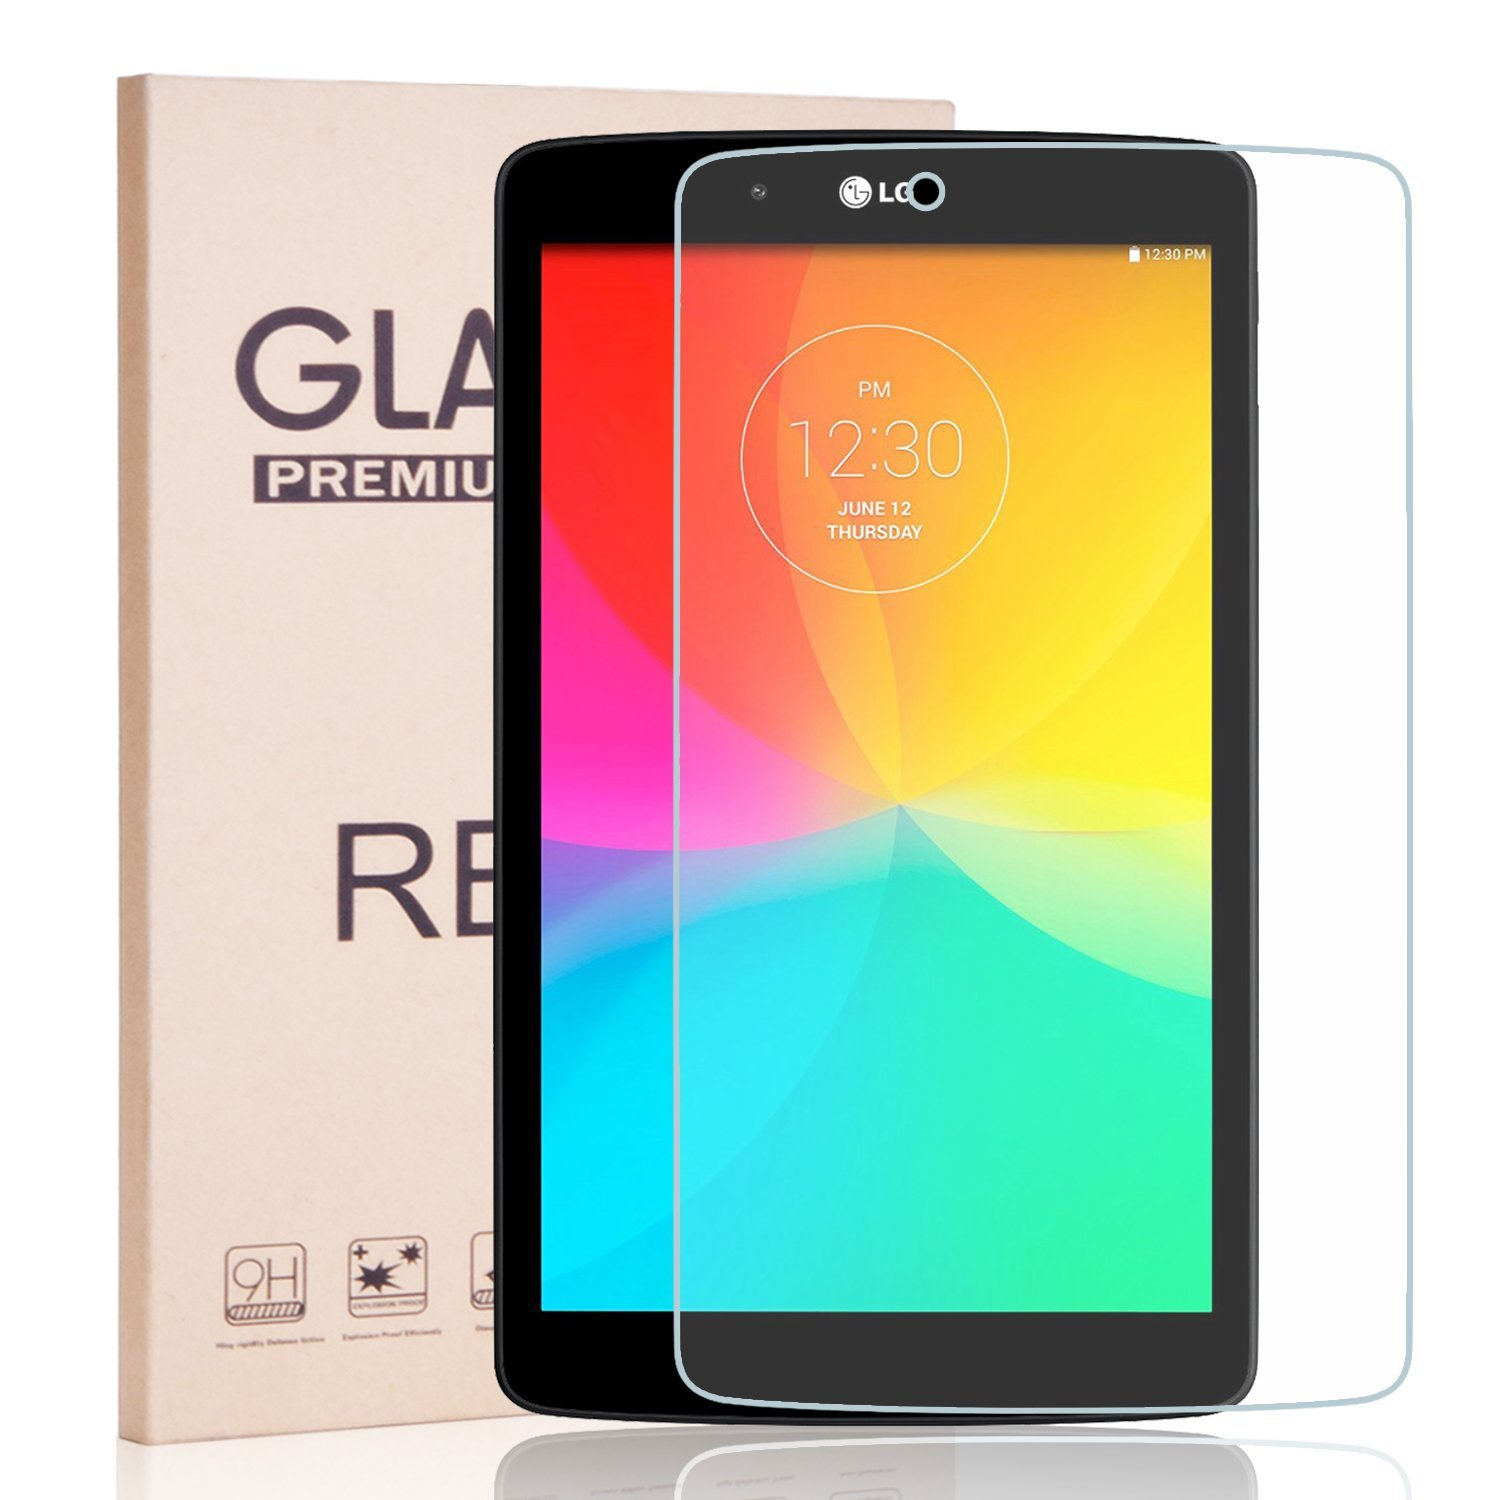 LG G Pad V480 8.0 Inch Screen Protector - RBEIK Premium 9H Hardness Tempered Glass Screen Protector for LG Electronics G Pad LGV480 8-Inch Tablet NOT FIT LG G PAD F 8.0 Tablet